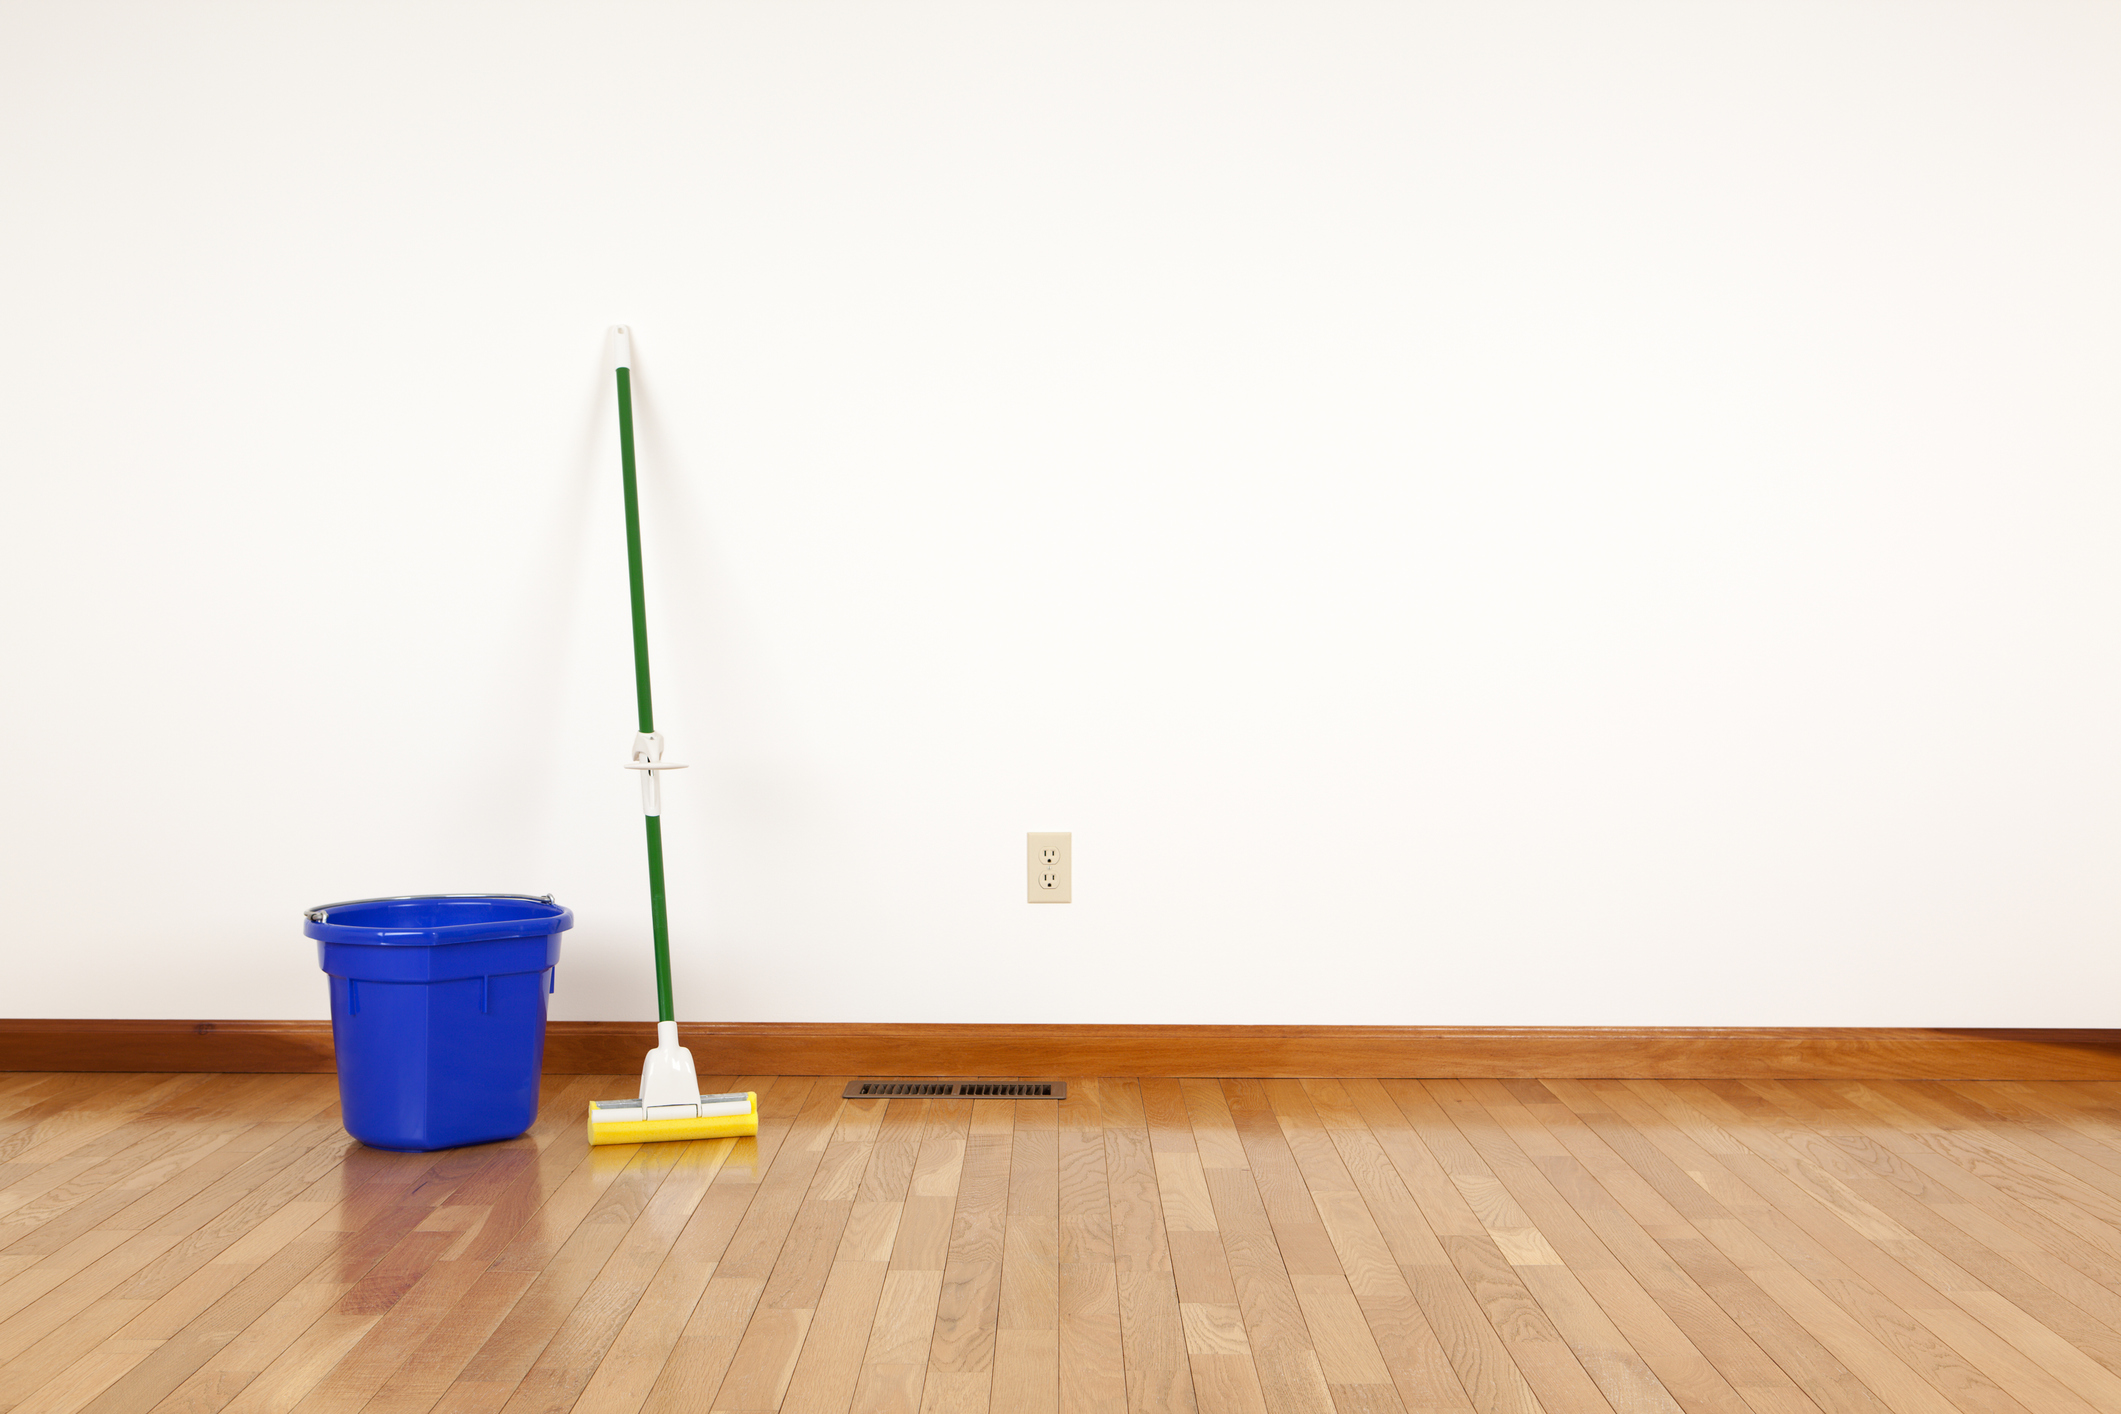 Best ways to clean wooden floors | Real Homes